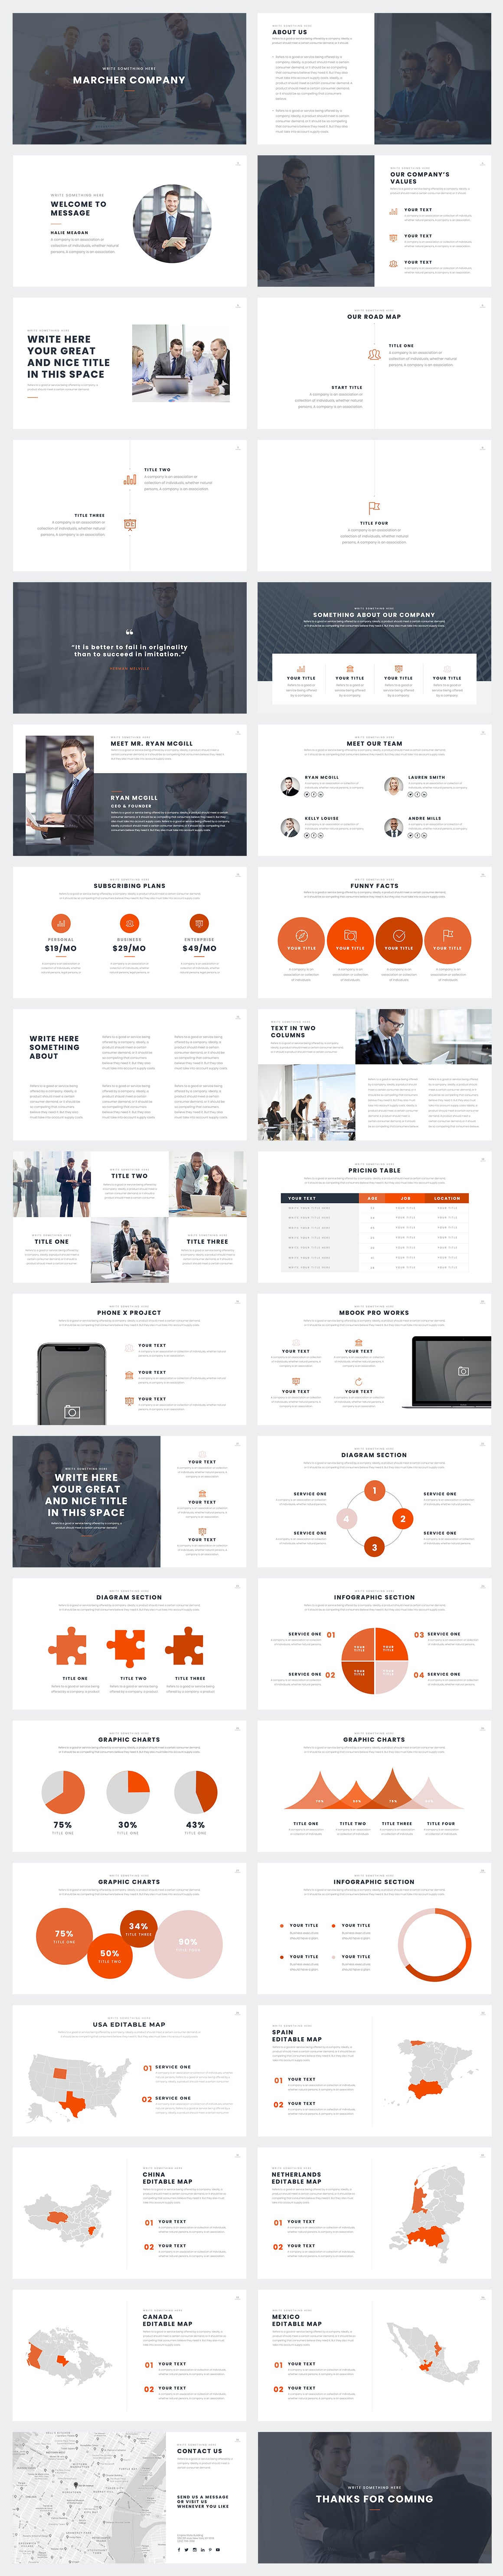 Marcher PowerPoint Template Slides Preview